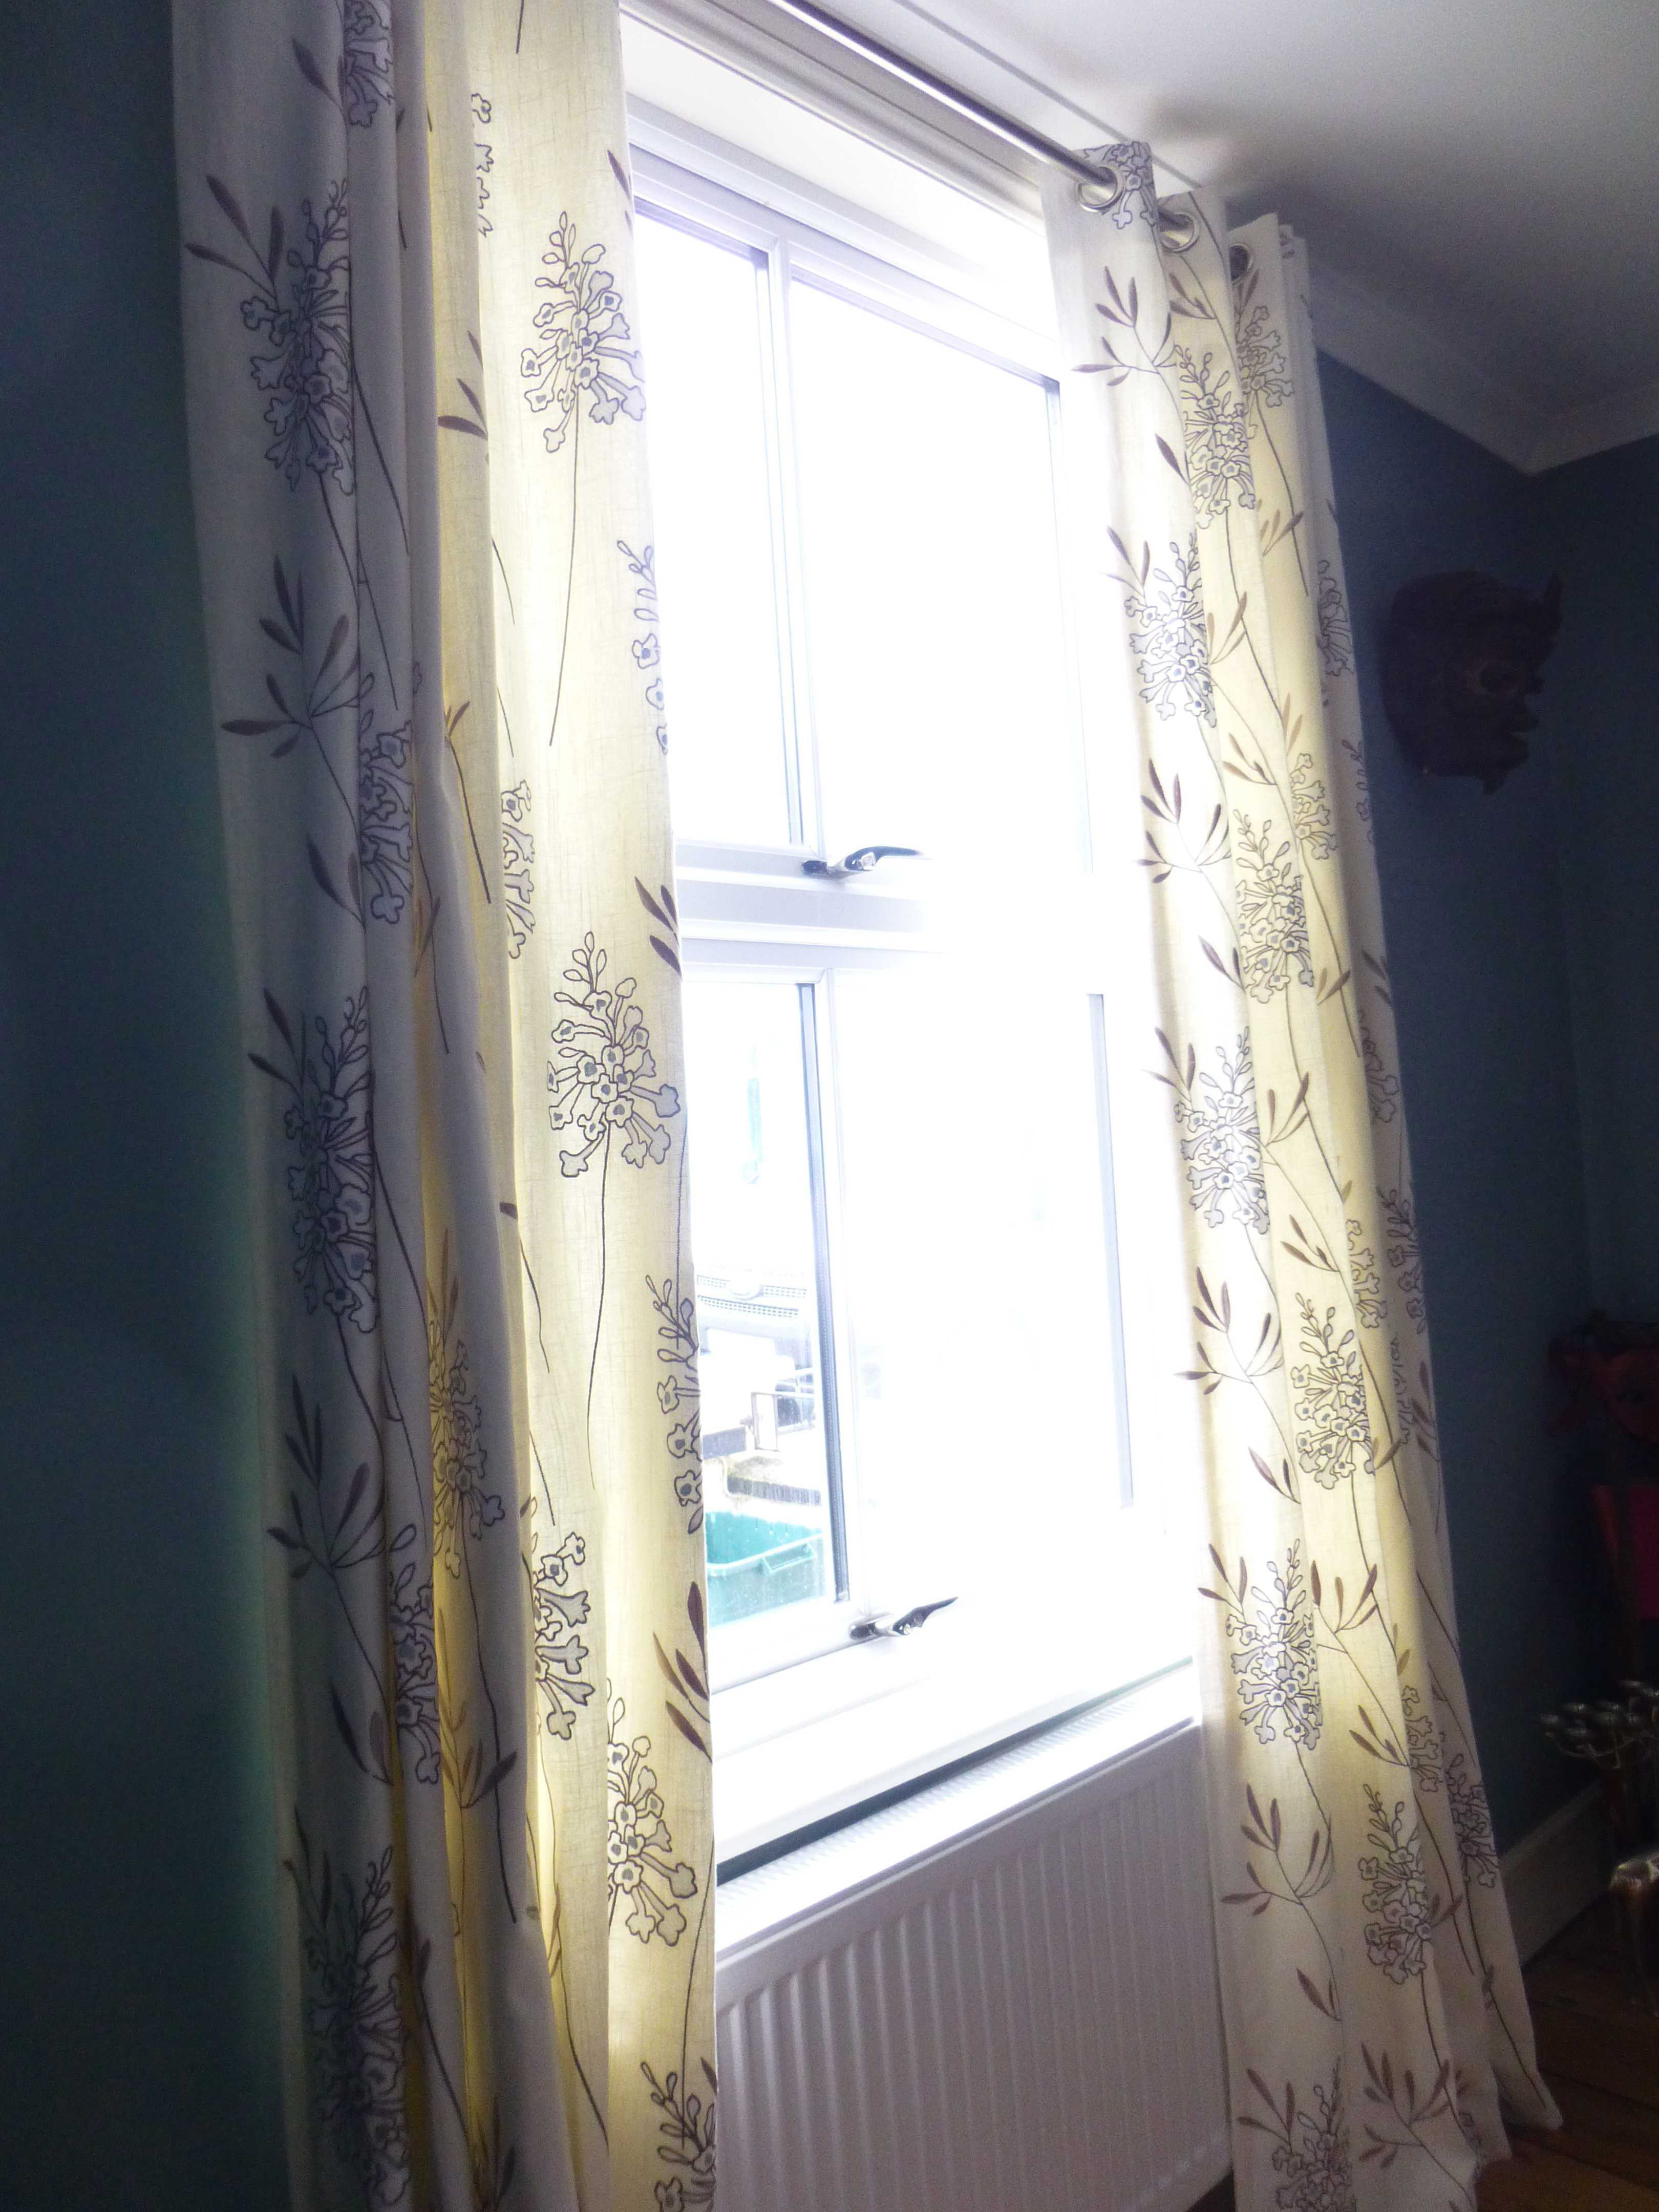 Eyeleted lined curtains - Tivoli, Cheltenham